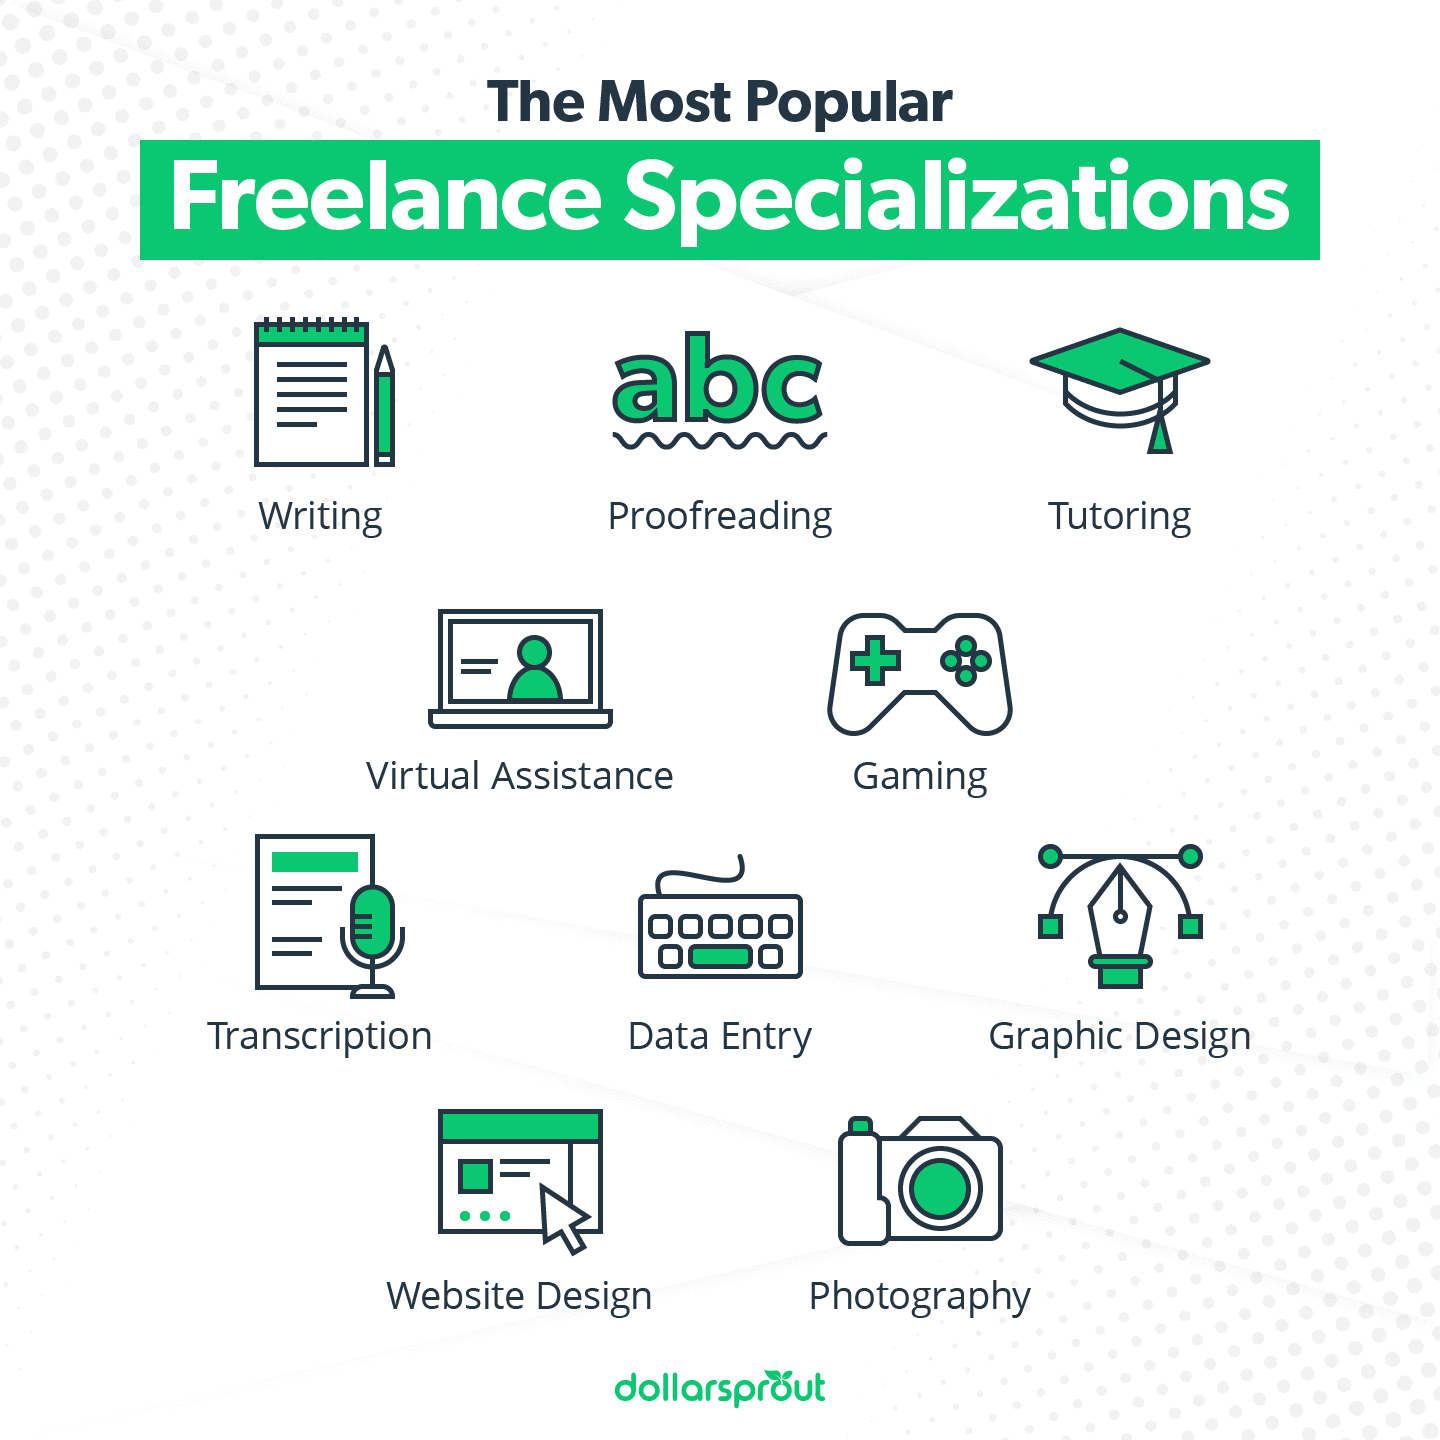 The Most Popular Freelance Specializations